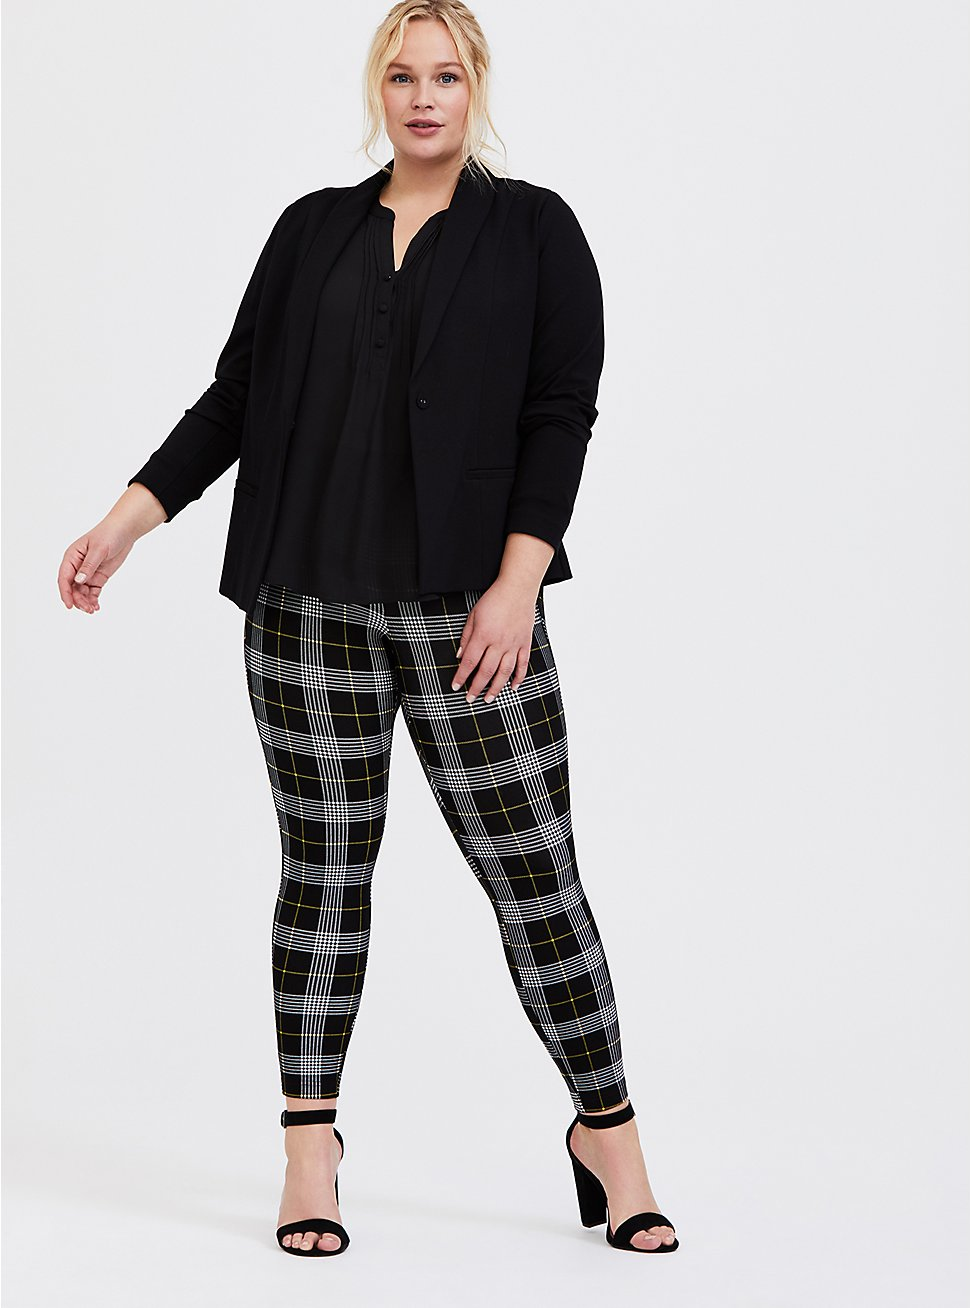 Studio Ponte Slim Fix Pull-On Pixie Pant - Black & Yellow Plaid, PLAID - YELLOW, hi-res